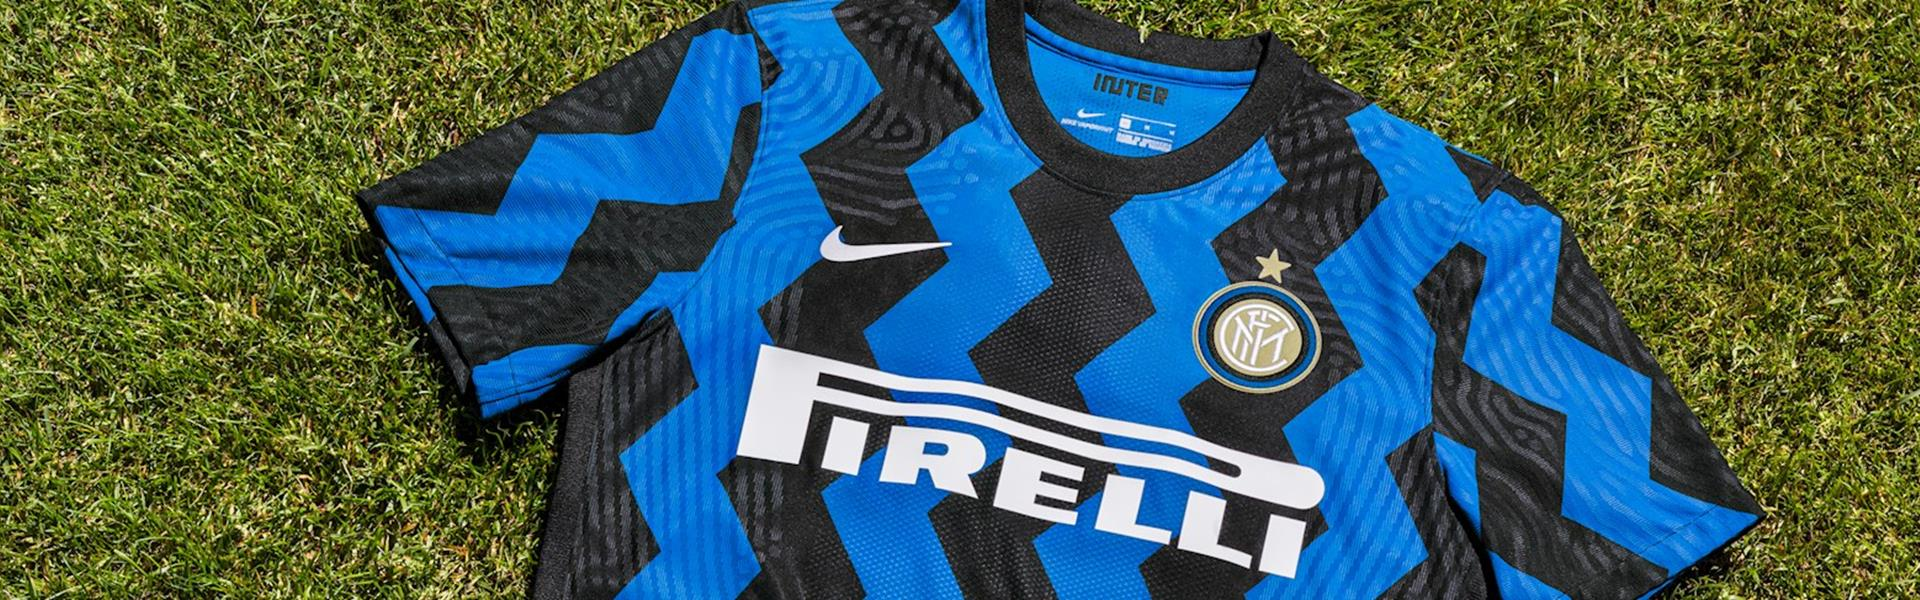 inter-milan-tenue-2020-21.jpg